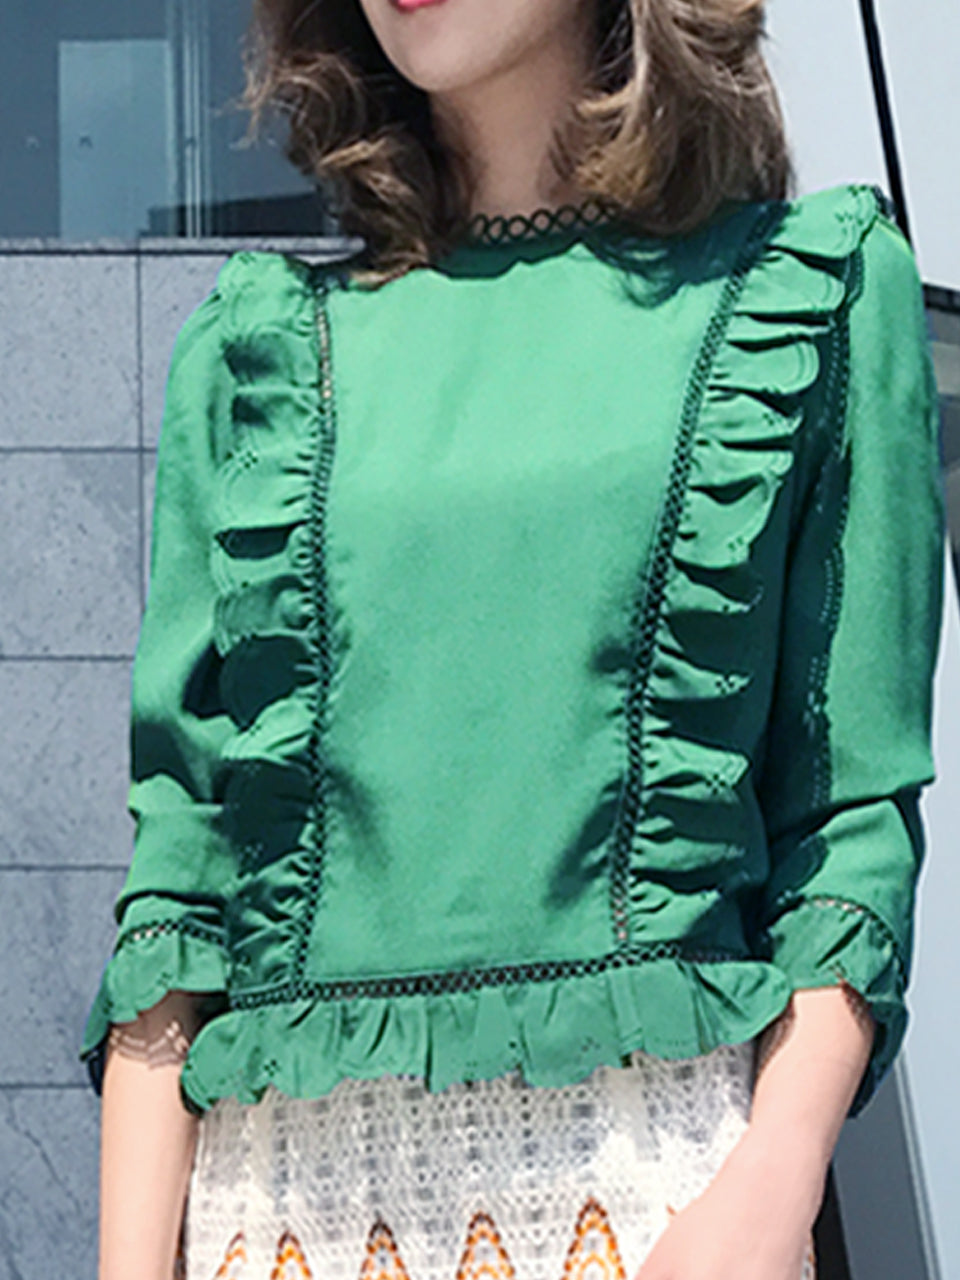 Further Sale! Pine Green Open-Work Slim Silhouette Ruffle Blouse